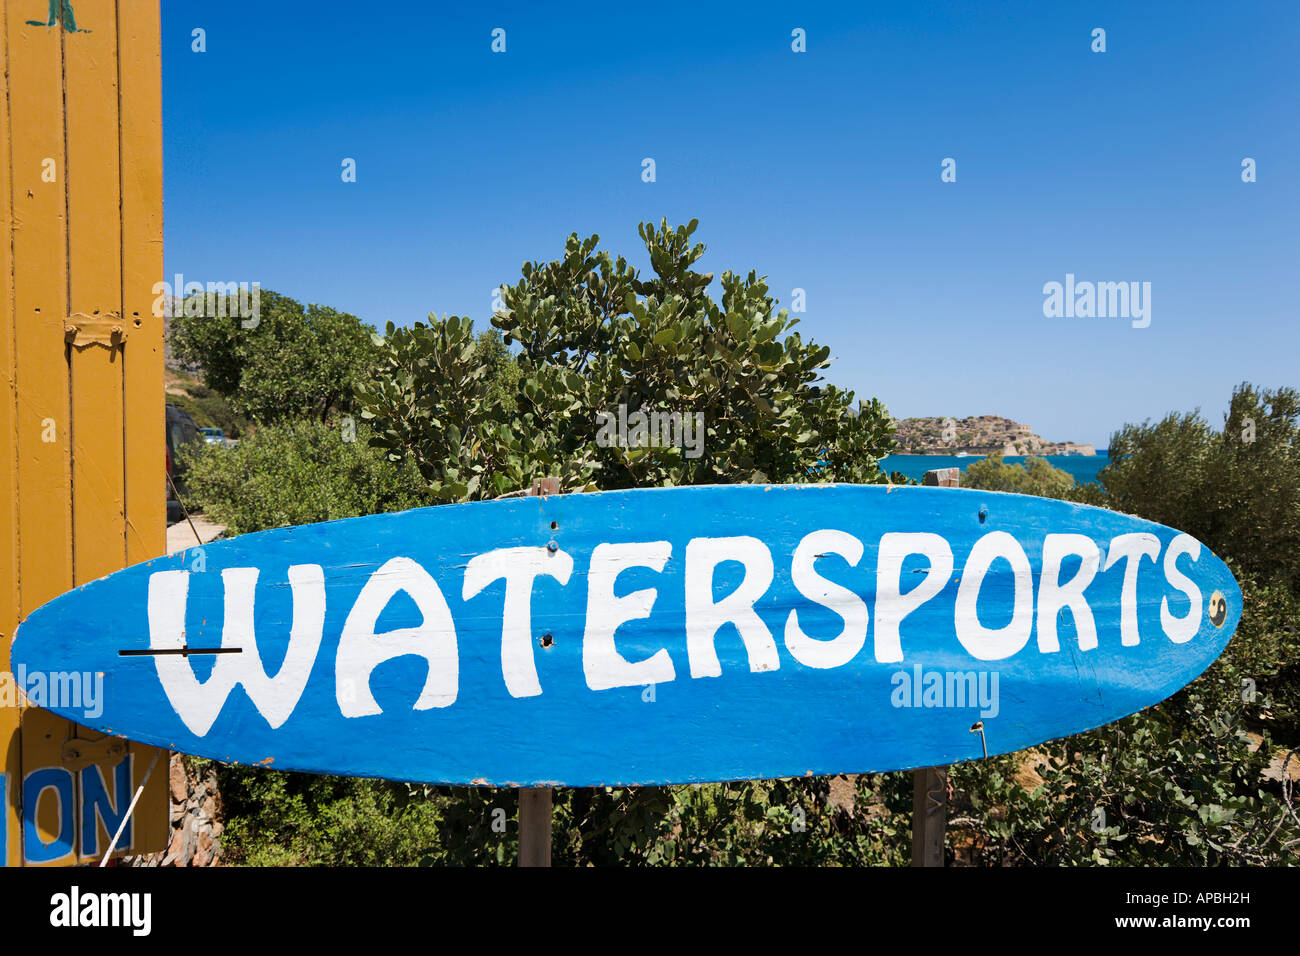 Watersports sign on Driros Beach, Elounda, North East Coast, Crete, Greece - Stock Image